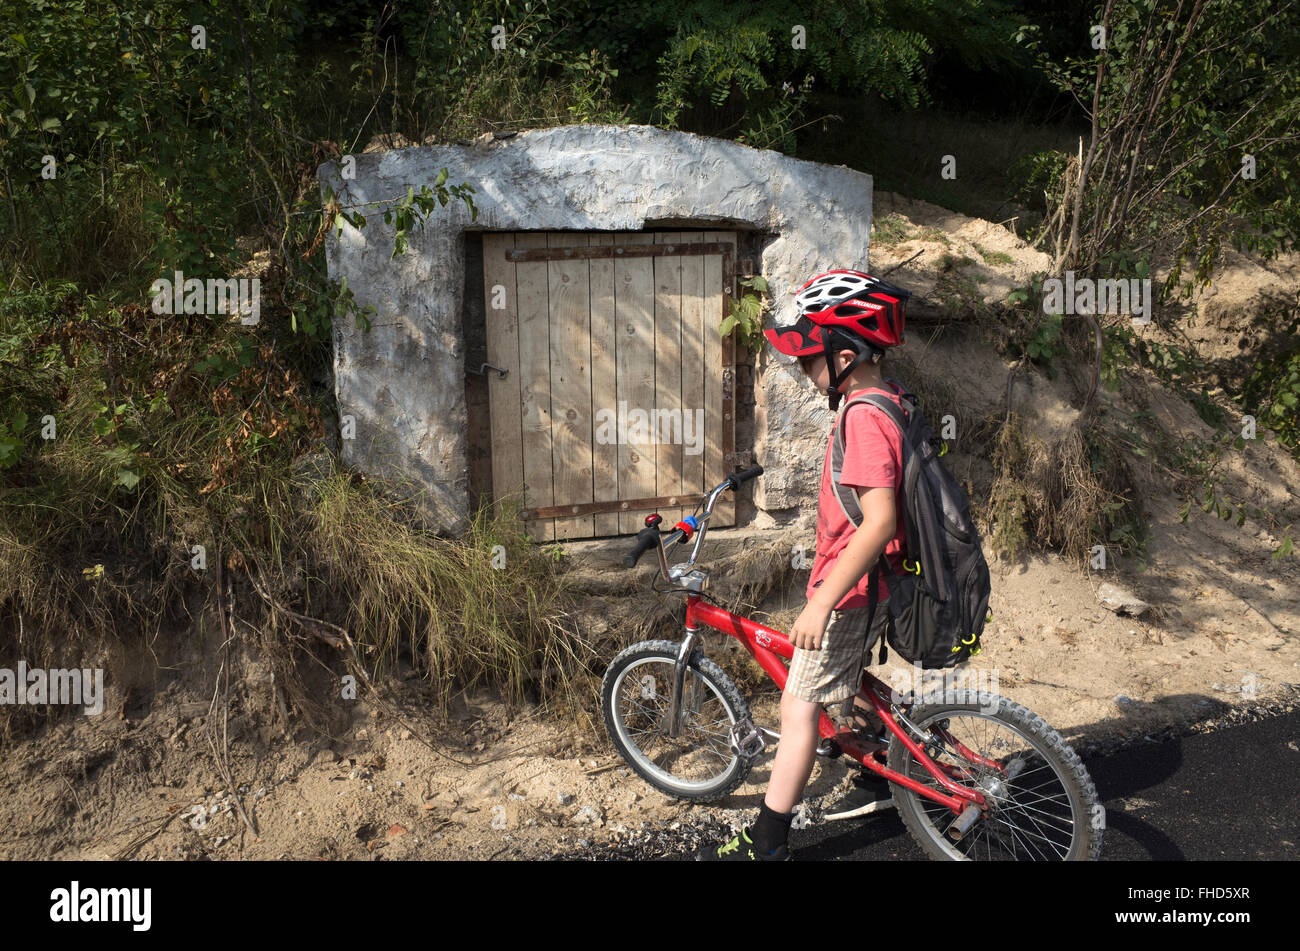 Bicycler contemplates small Hobbit size mystery door in side of hill along the road. Rzeczyca Central Poland - Stock Image